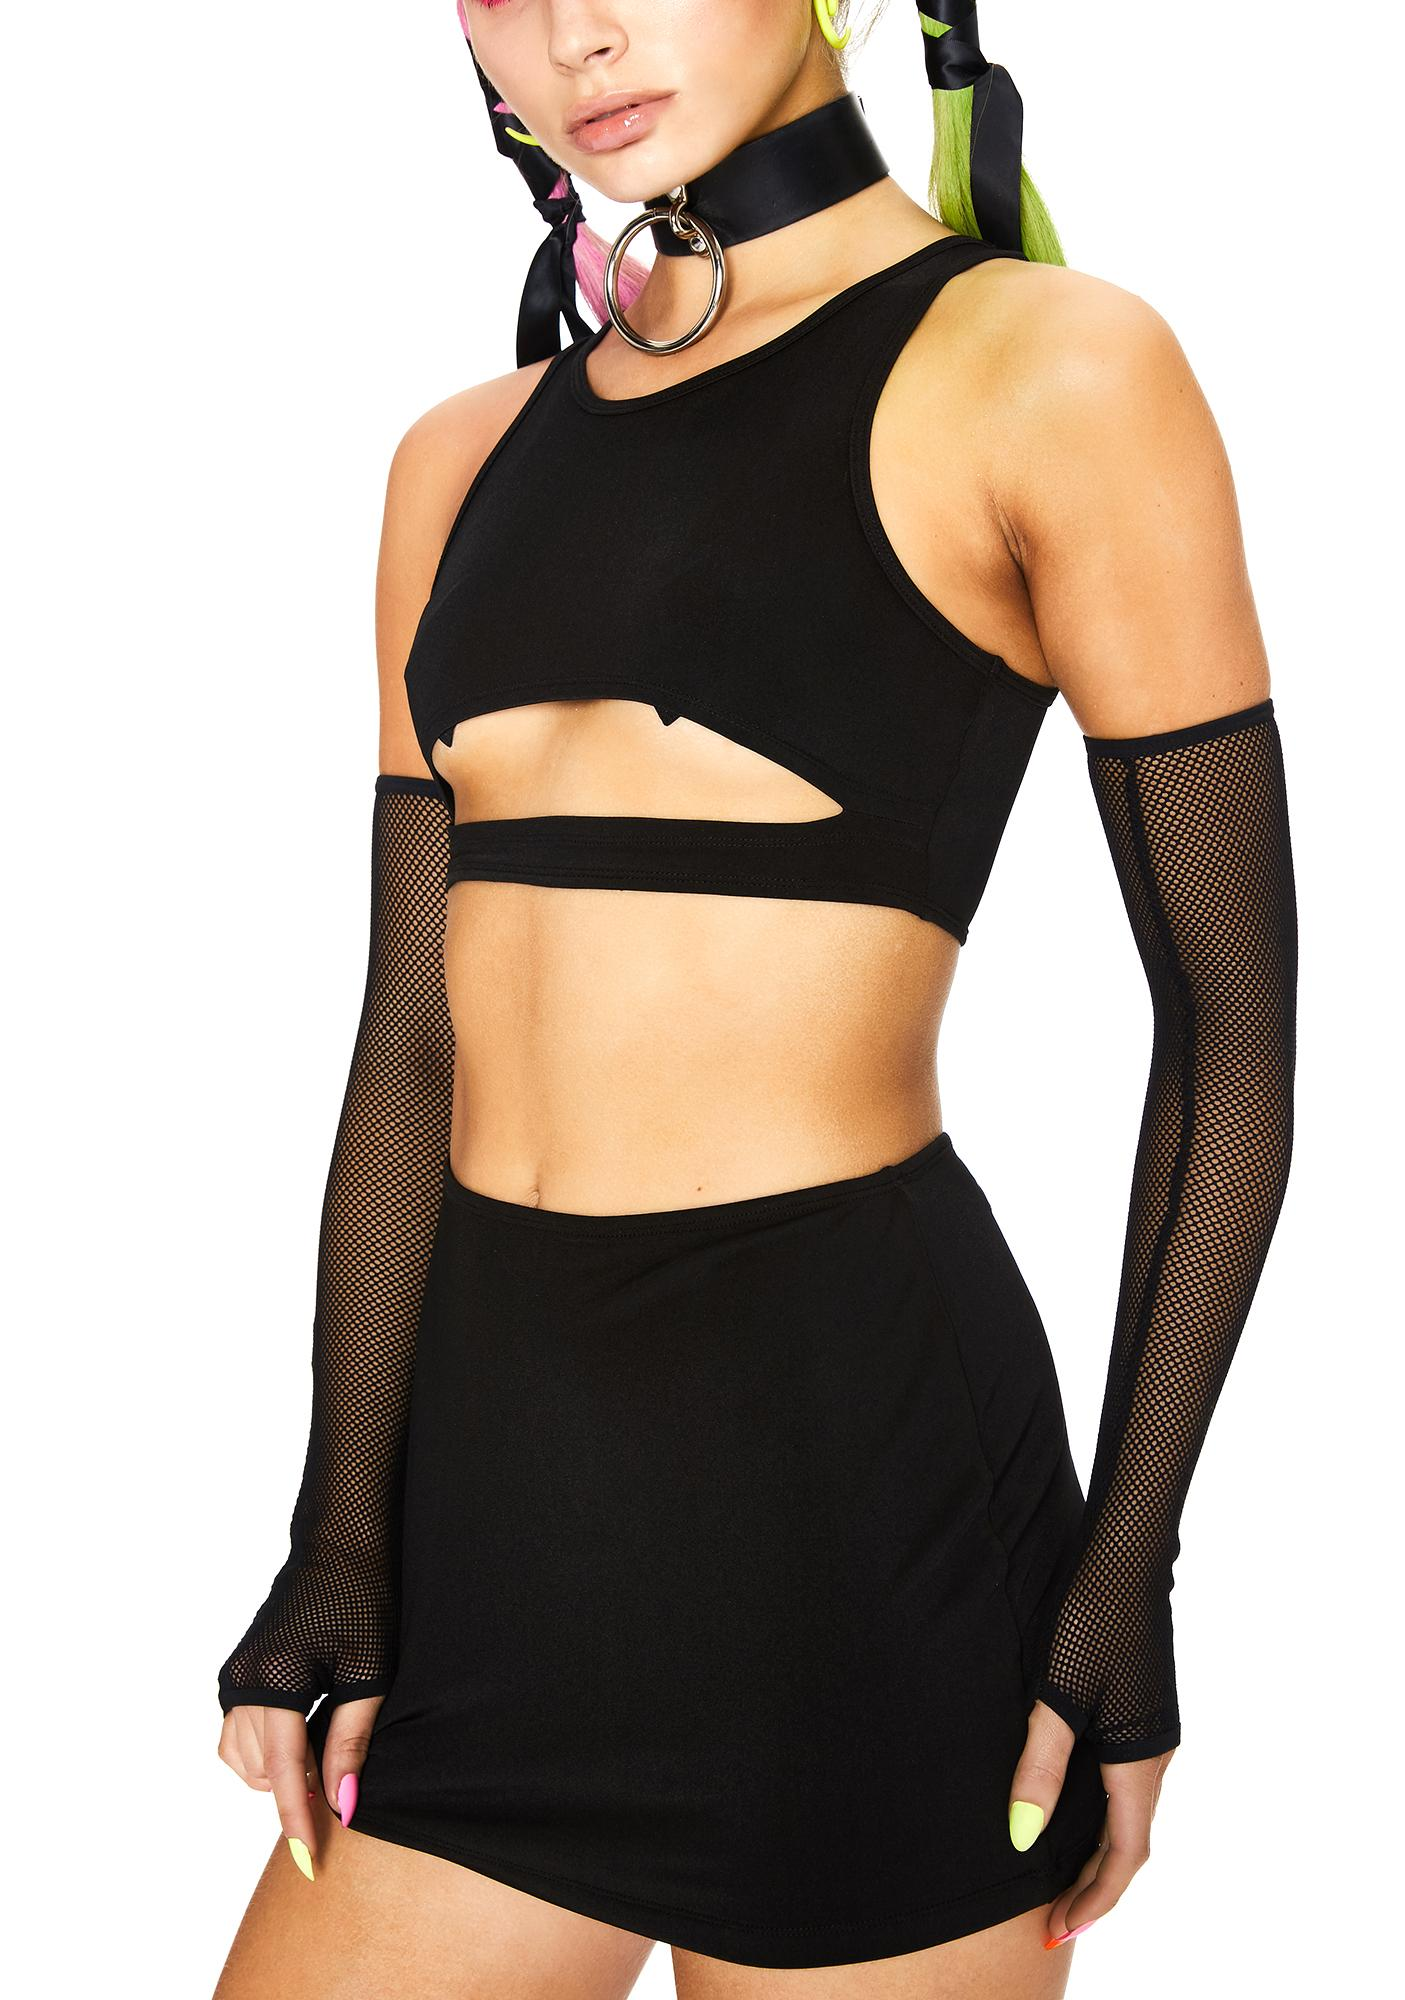 Club Exx Flash Delirium Skirt Set